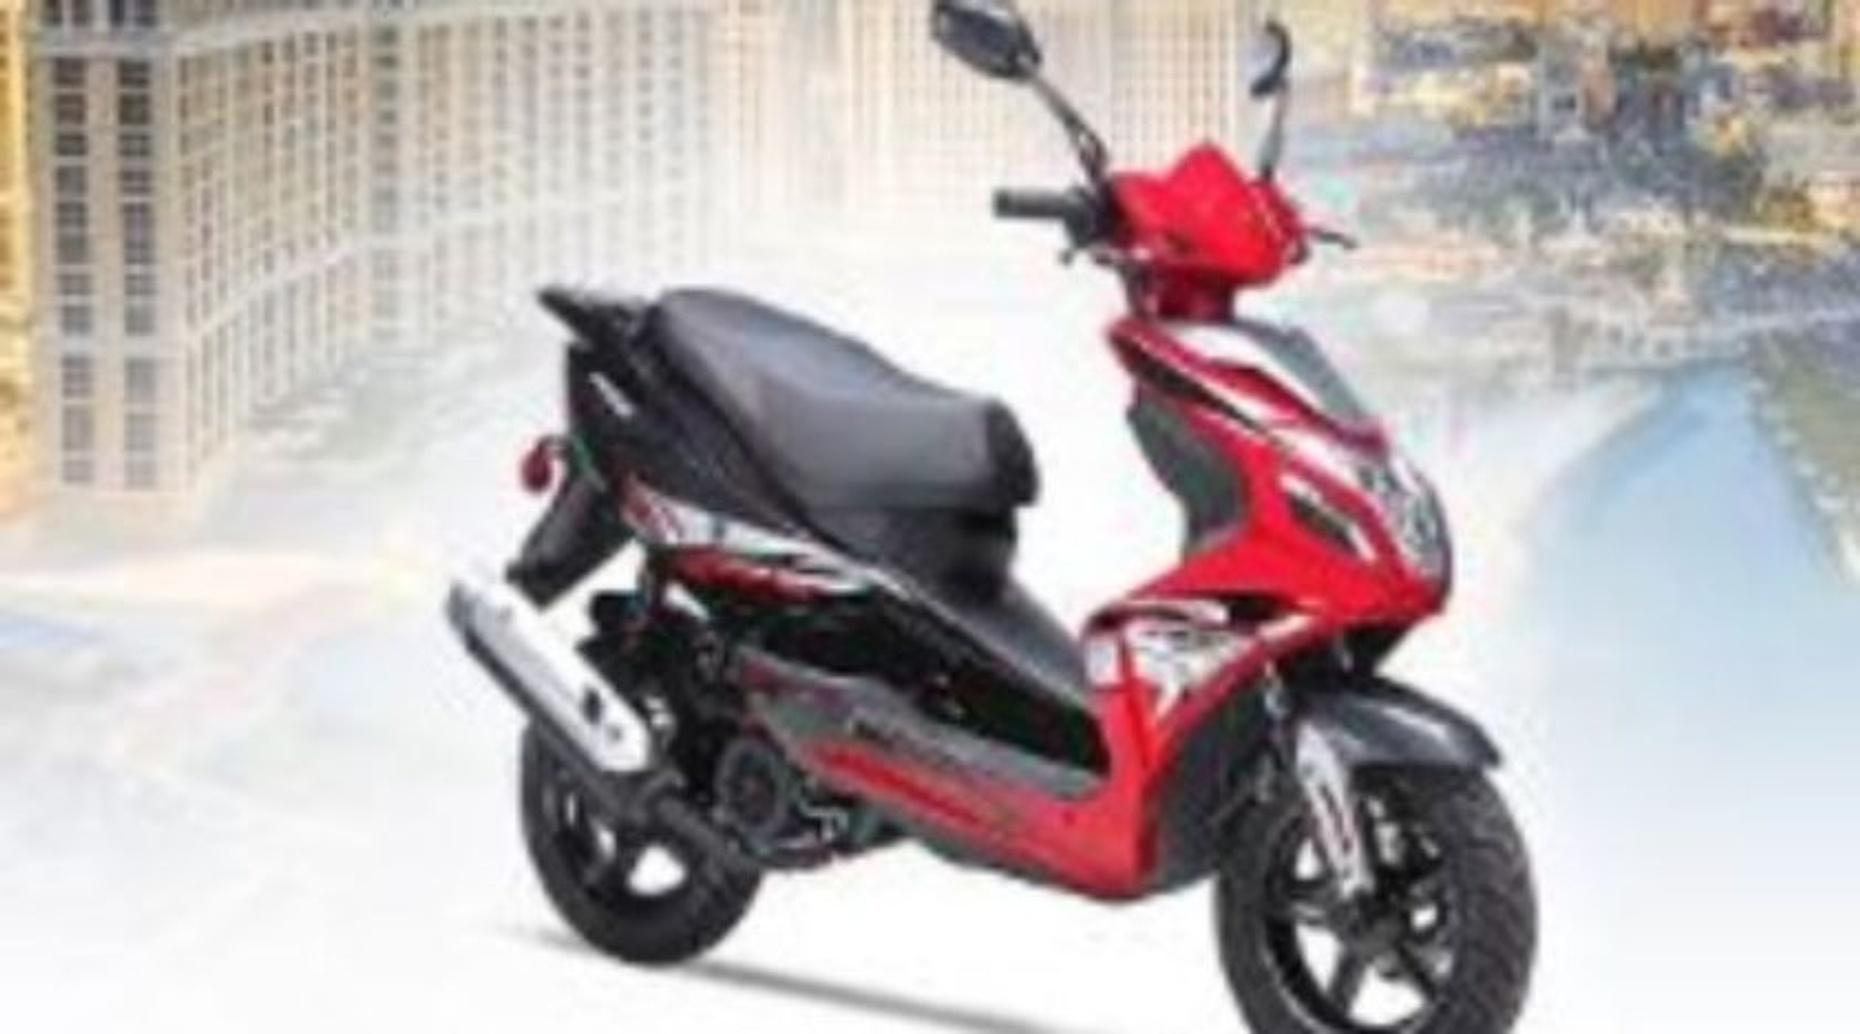 Full-Day 150cc Scooter Rental in Las Vegas